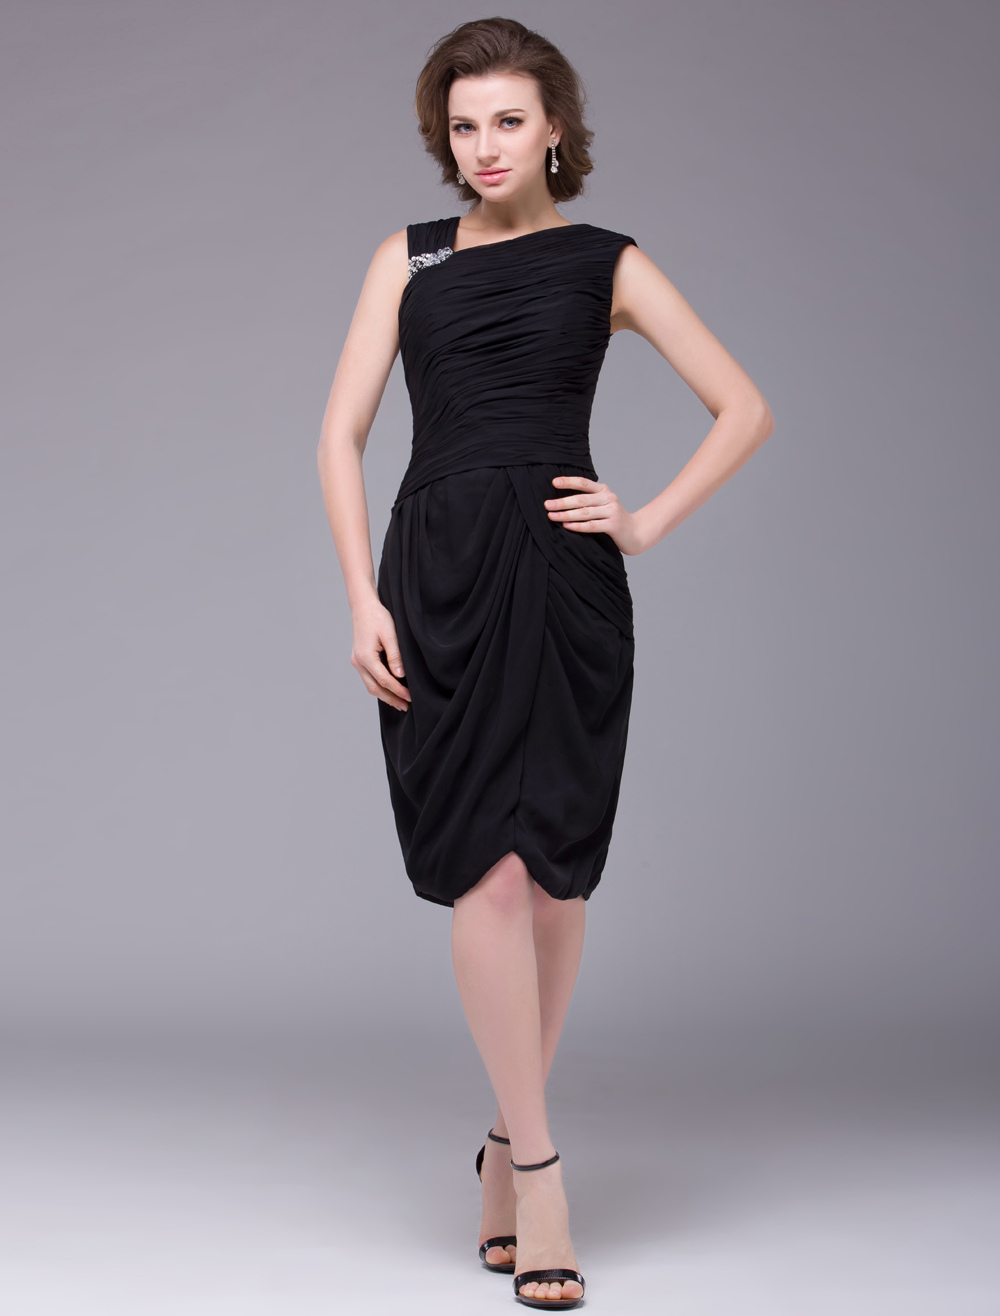 Black Sleeveless Knee Length Imitated Silk Mother of the Bride Dress Wedding Guest Dress